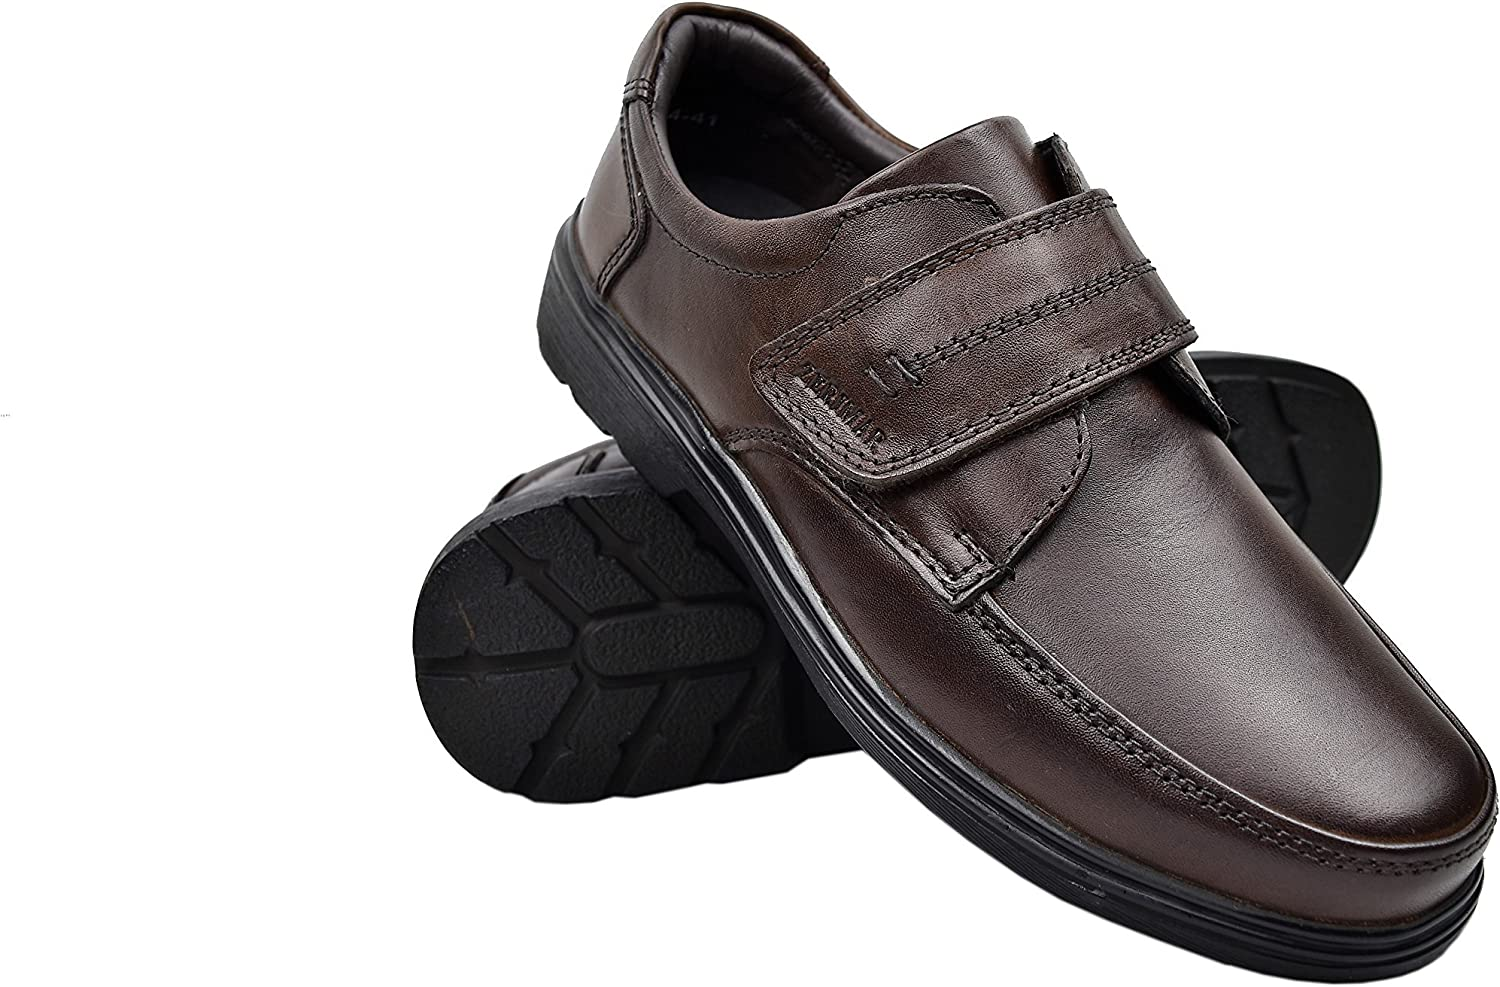 Zerimar Men's Leather shoes   Casual Men's shoes   Elegant shoes for Men   Leather shoes for Men Colour  Brown Size 12 UK - 45 EU